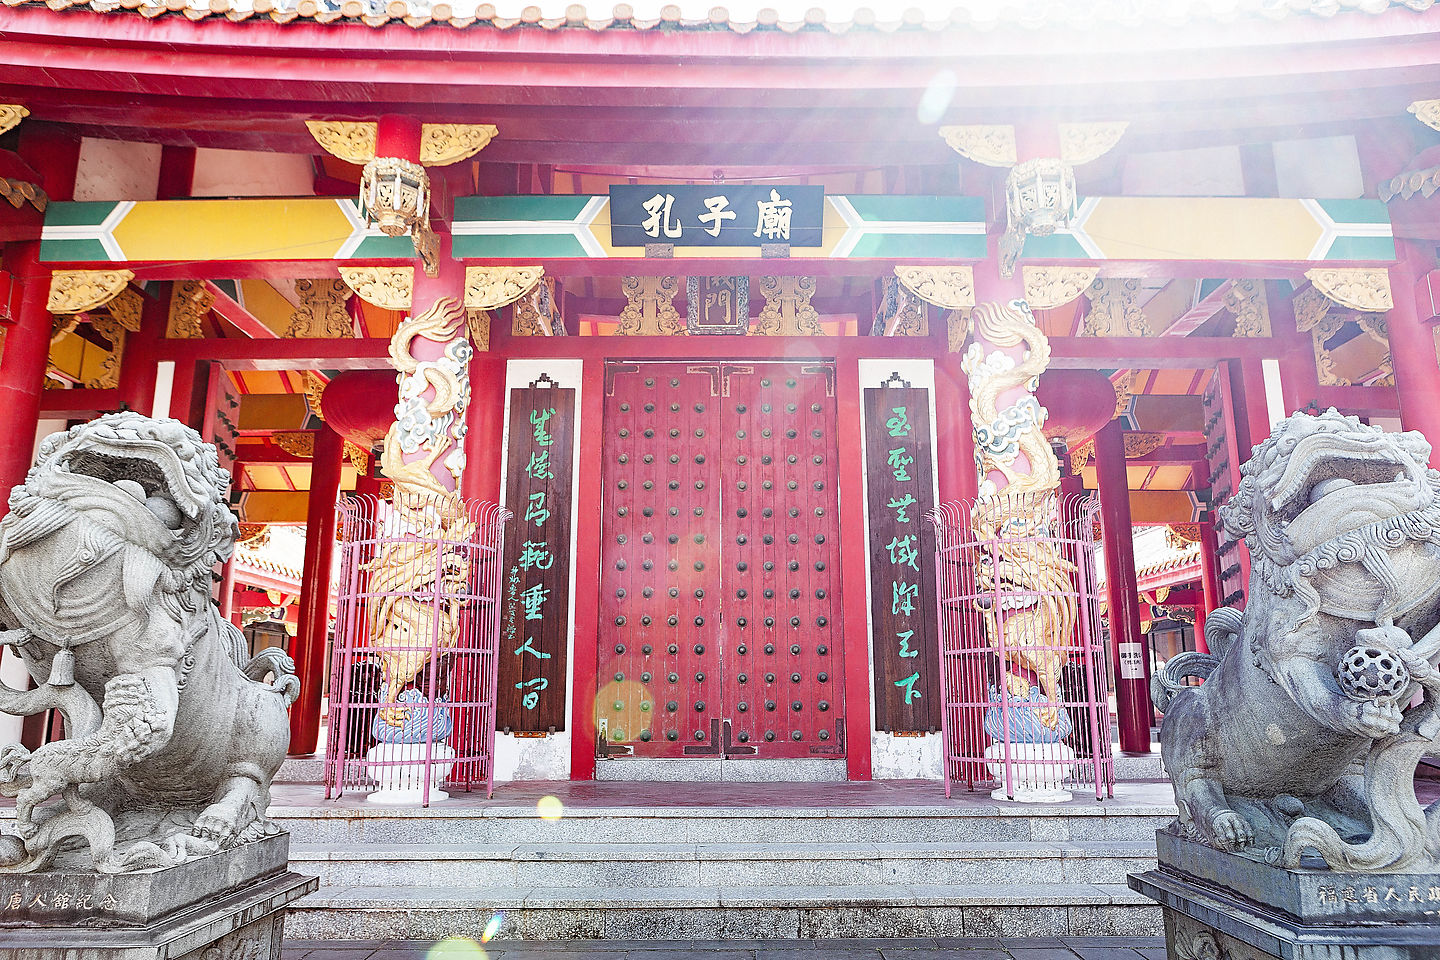 The Confucius temple in Nagasaki